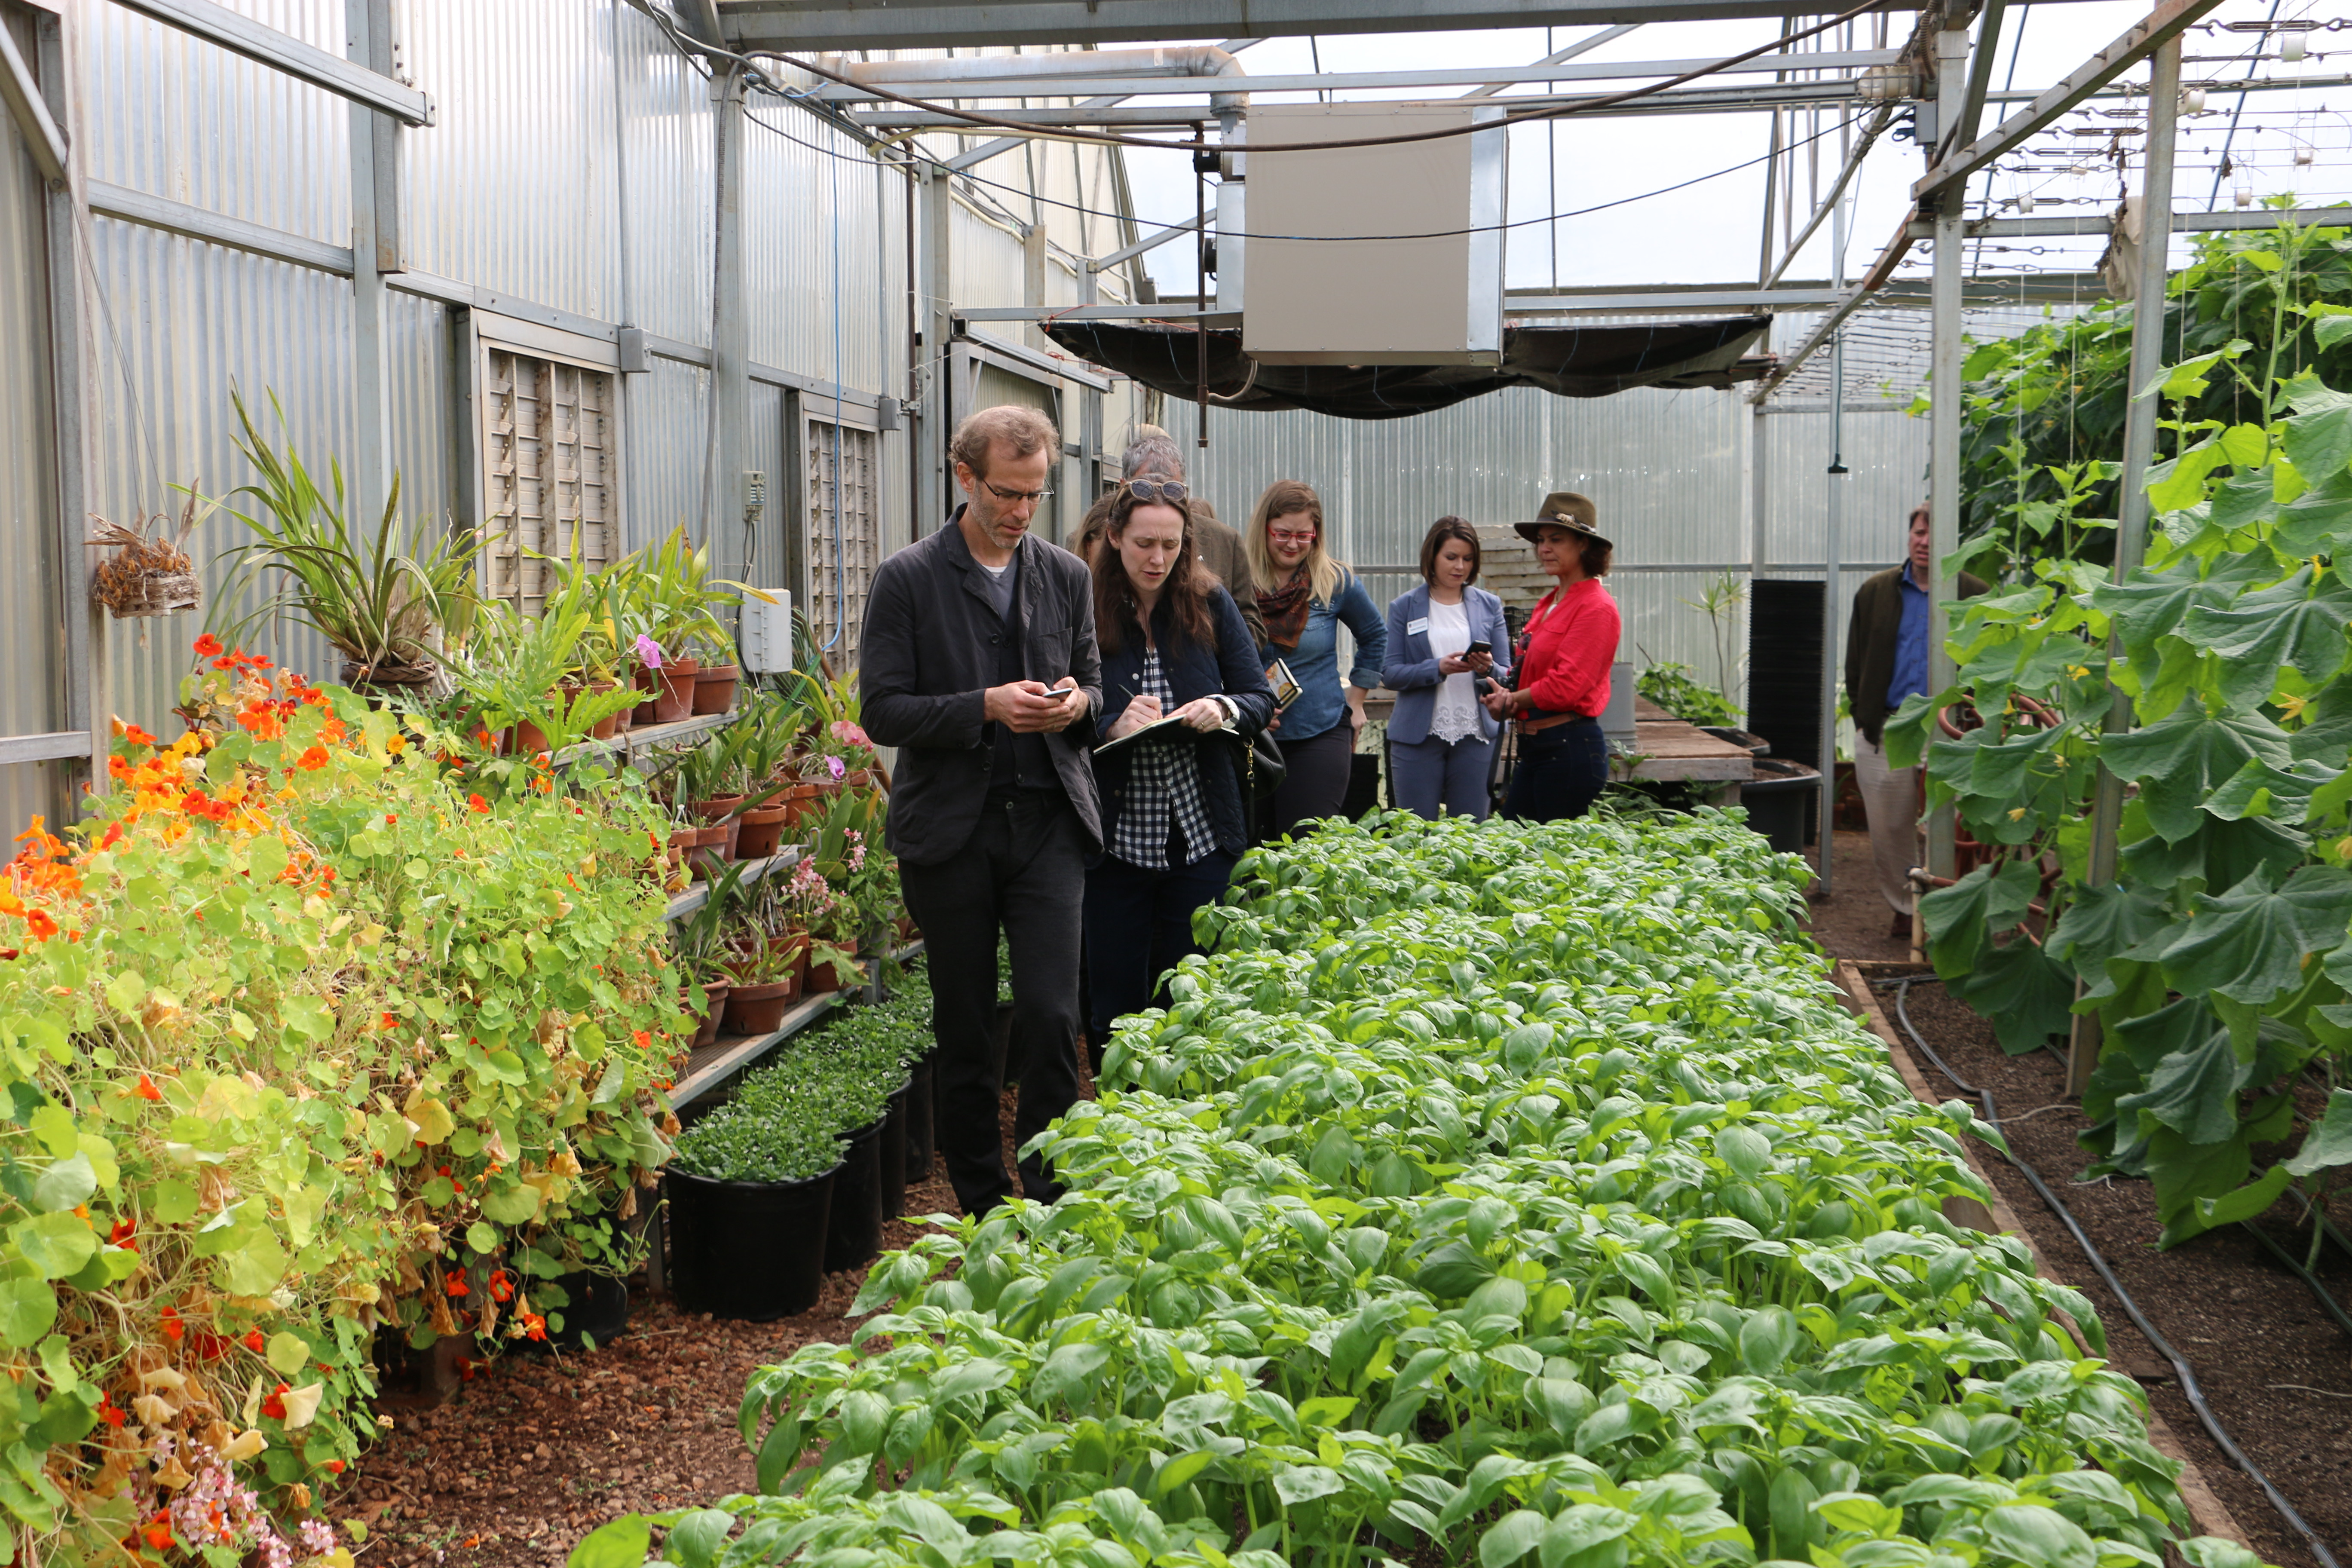 Chef Dan Barber and Row 7 Seeds employee Charlotte Douglas tour the greenhouses at Whippoorwill Farms in Winterville, Georgia while Barber was in Athens to speak at the University of Georgia Tuesday, April 10.